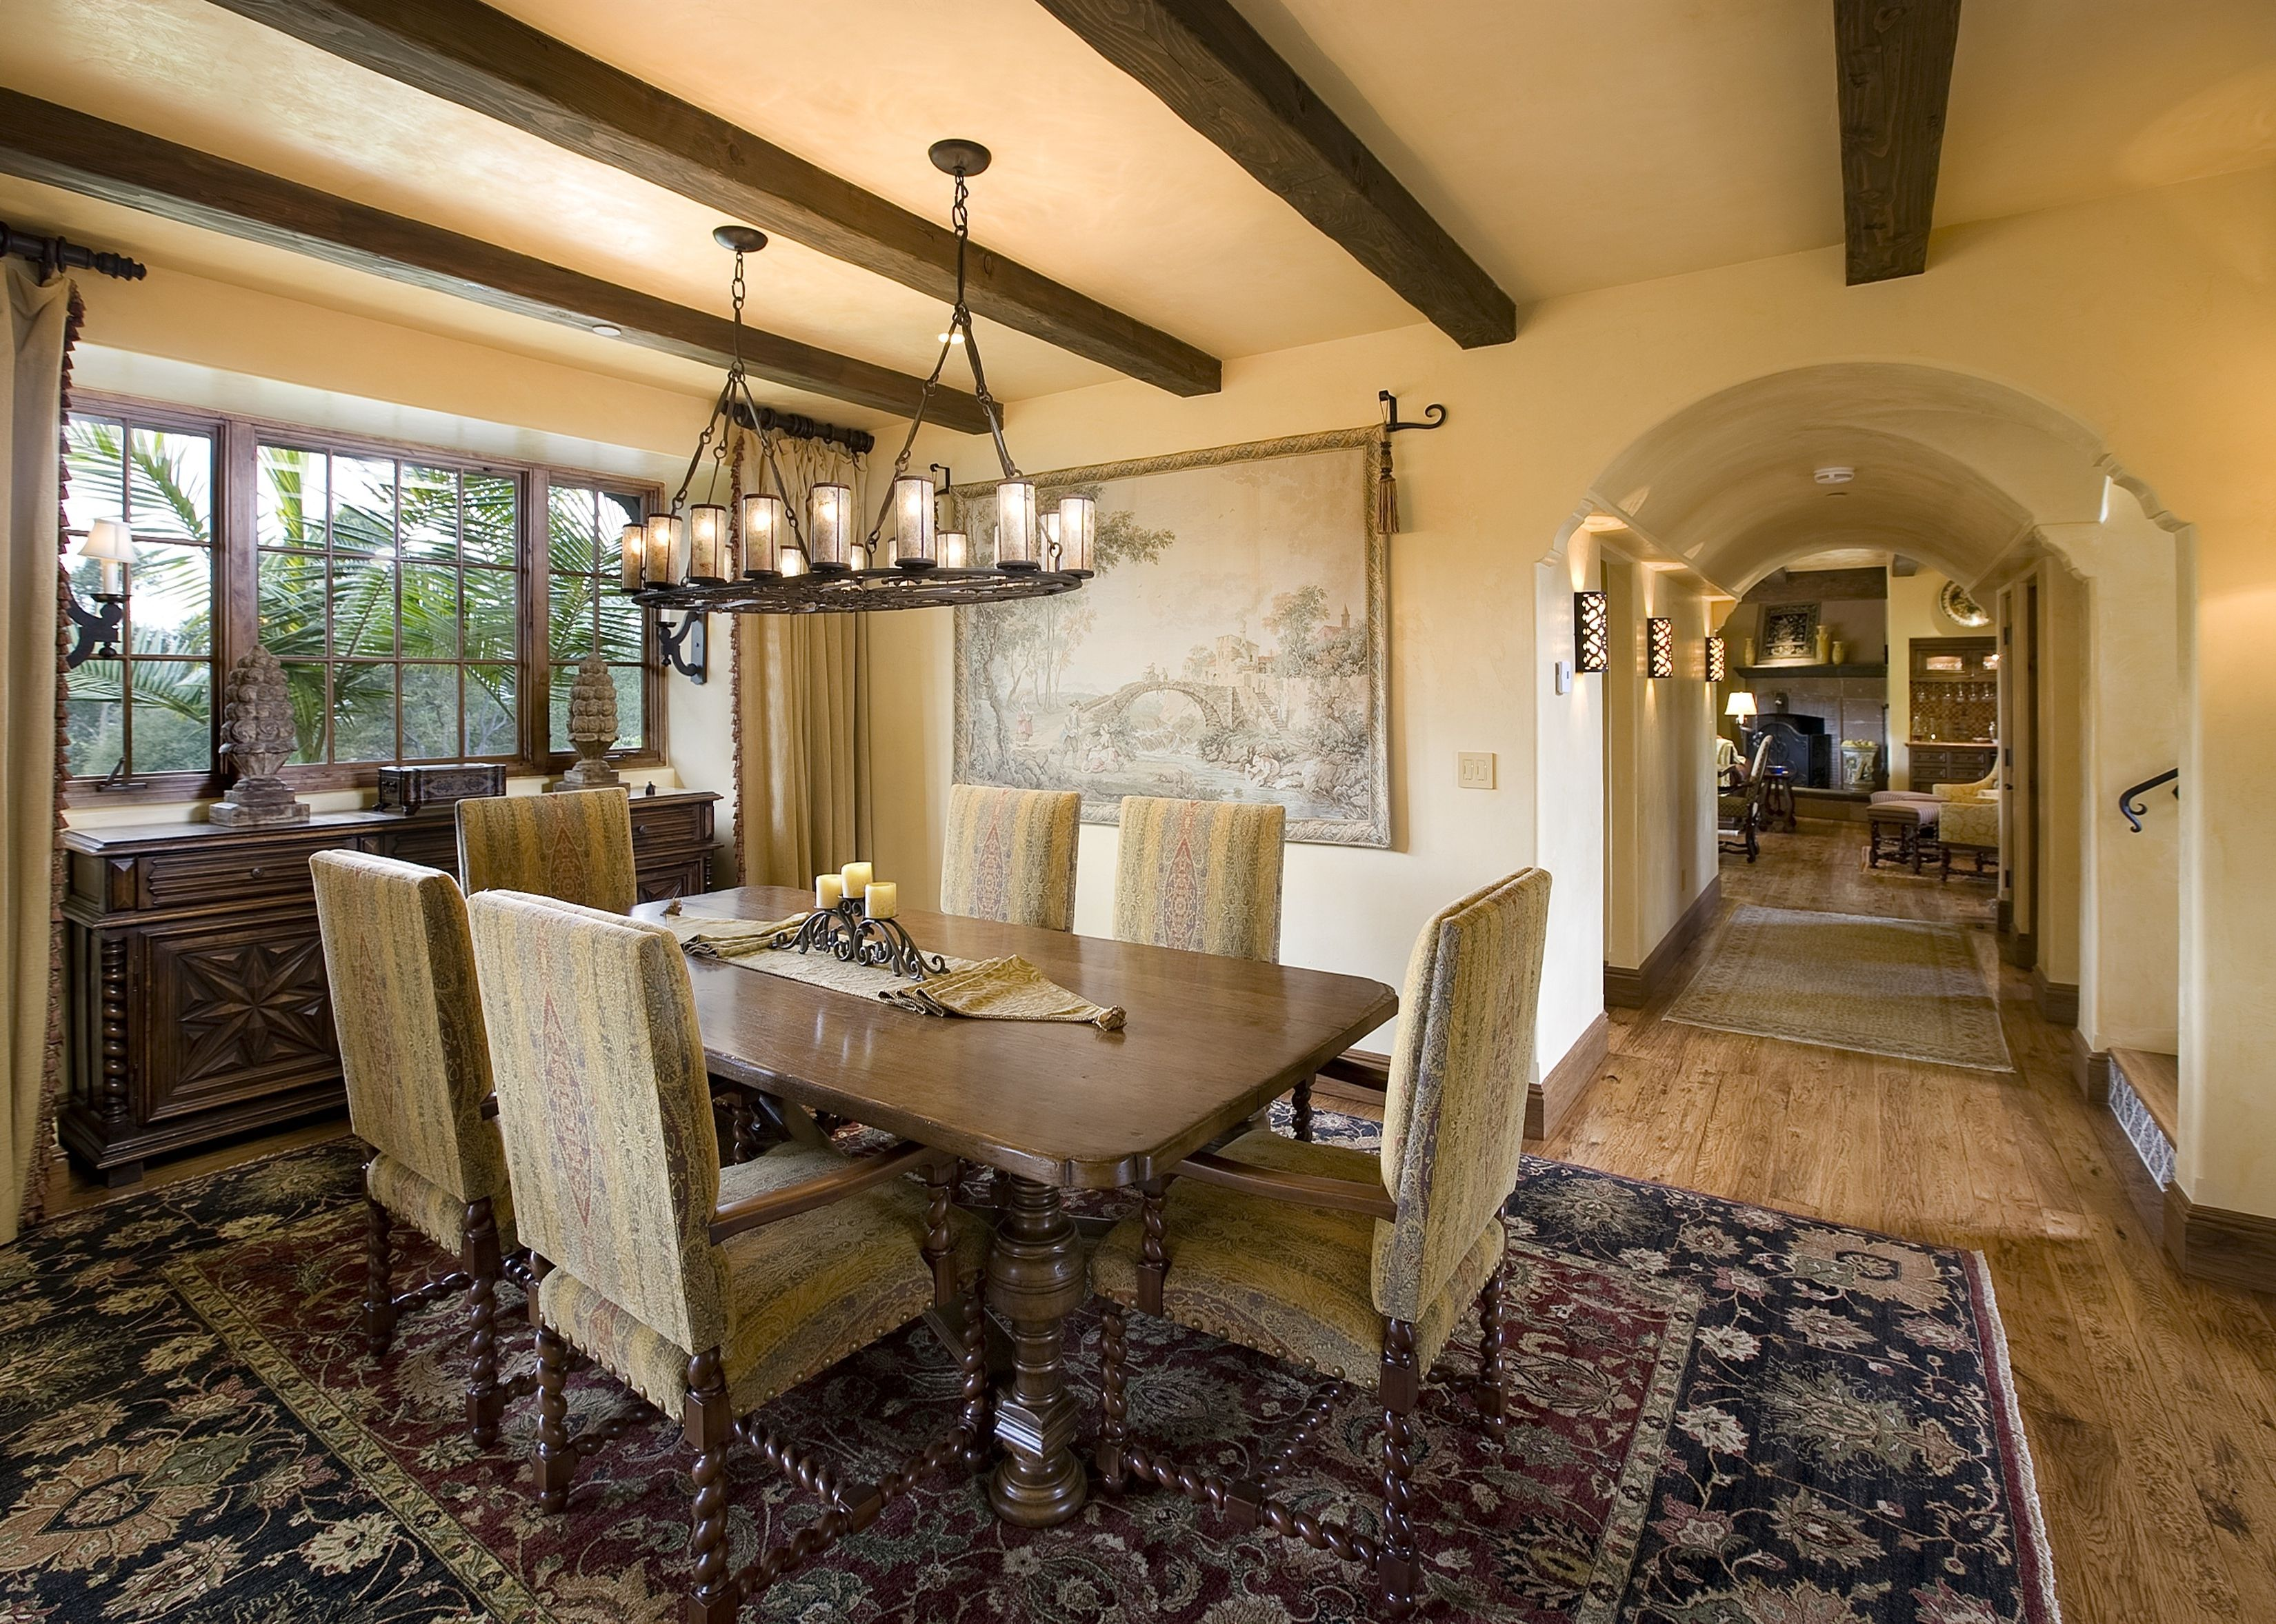 About Mediterranean dining room design ideas, this house ...